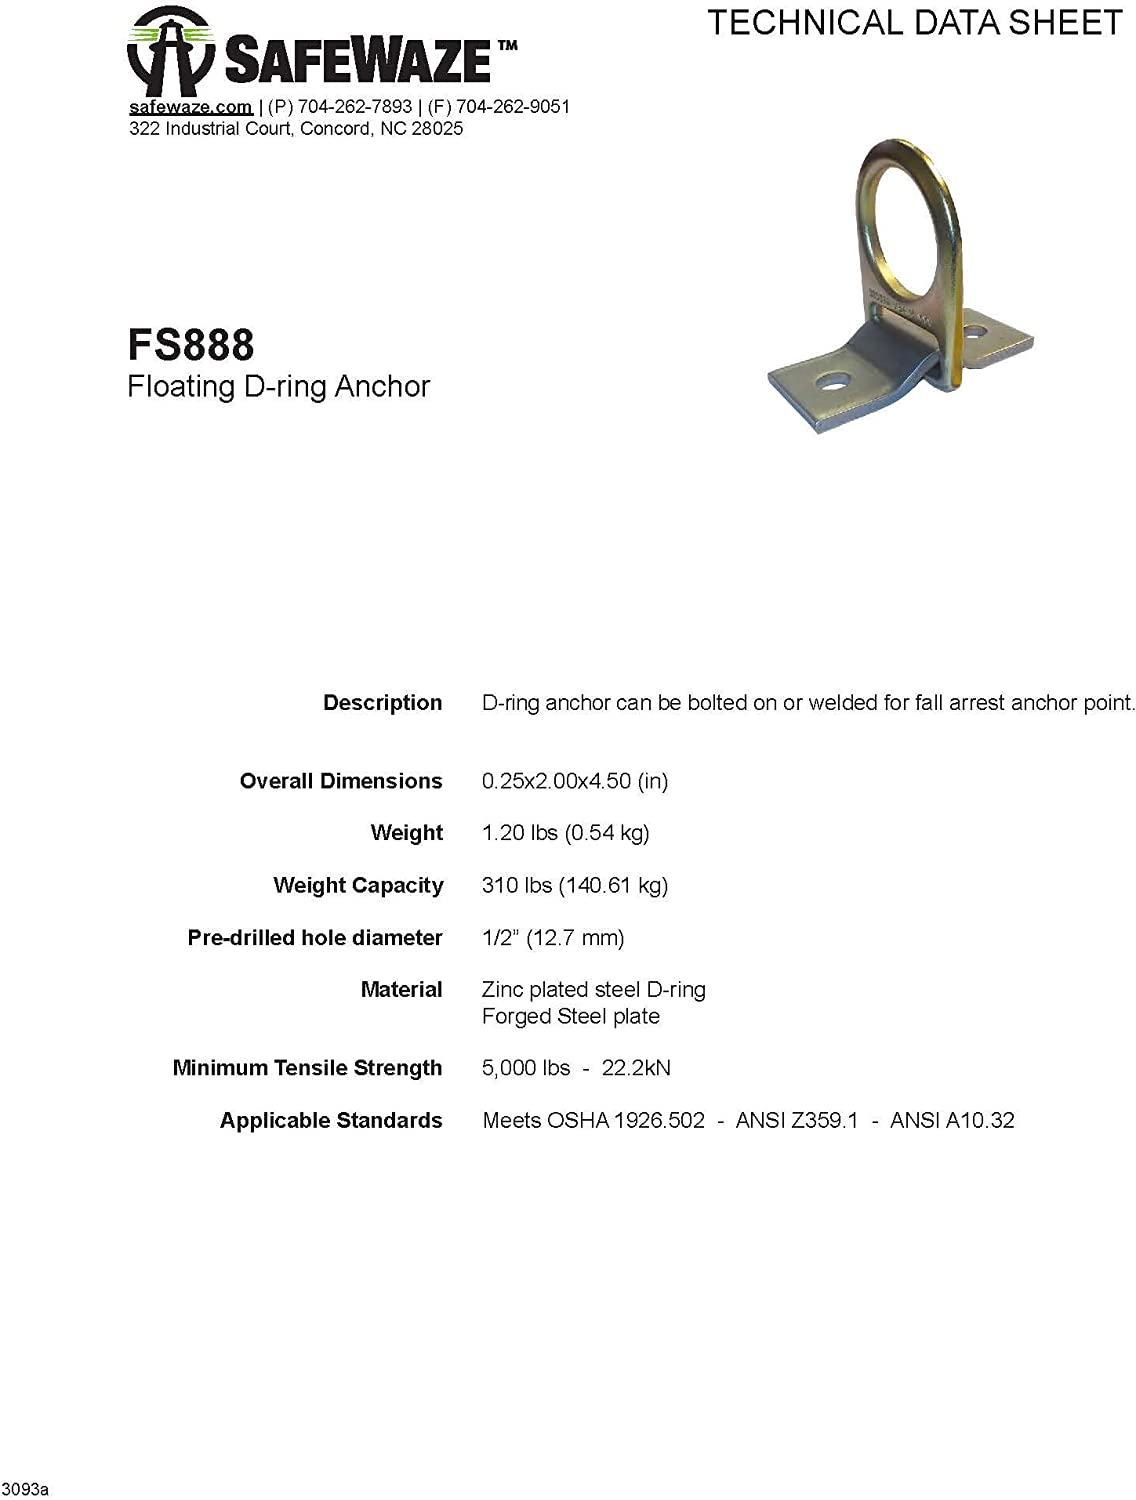 SafeWaze Floating D-Ring Anchor for Industrial and Construction Use FS888 OSHA//ANSI Compliant Fall Protection Device